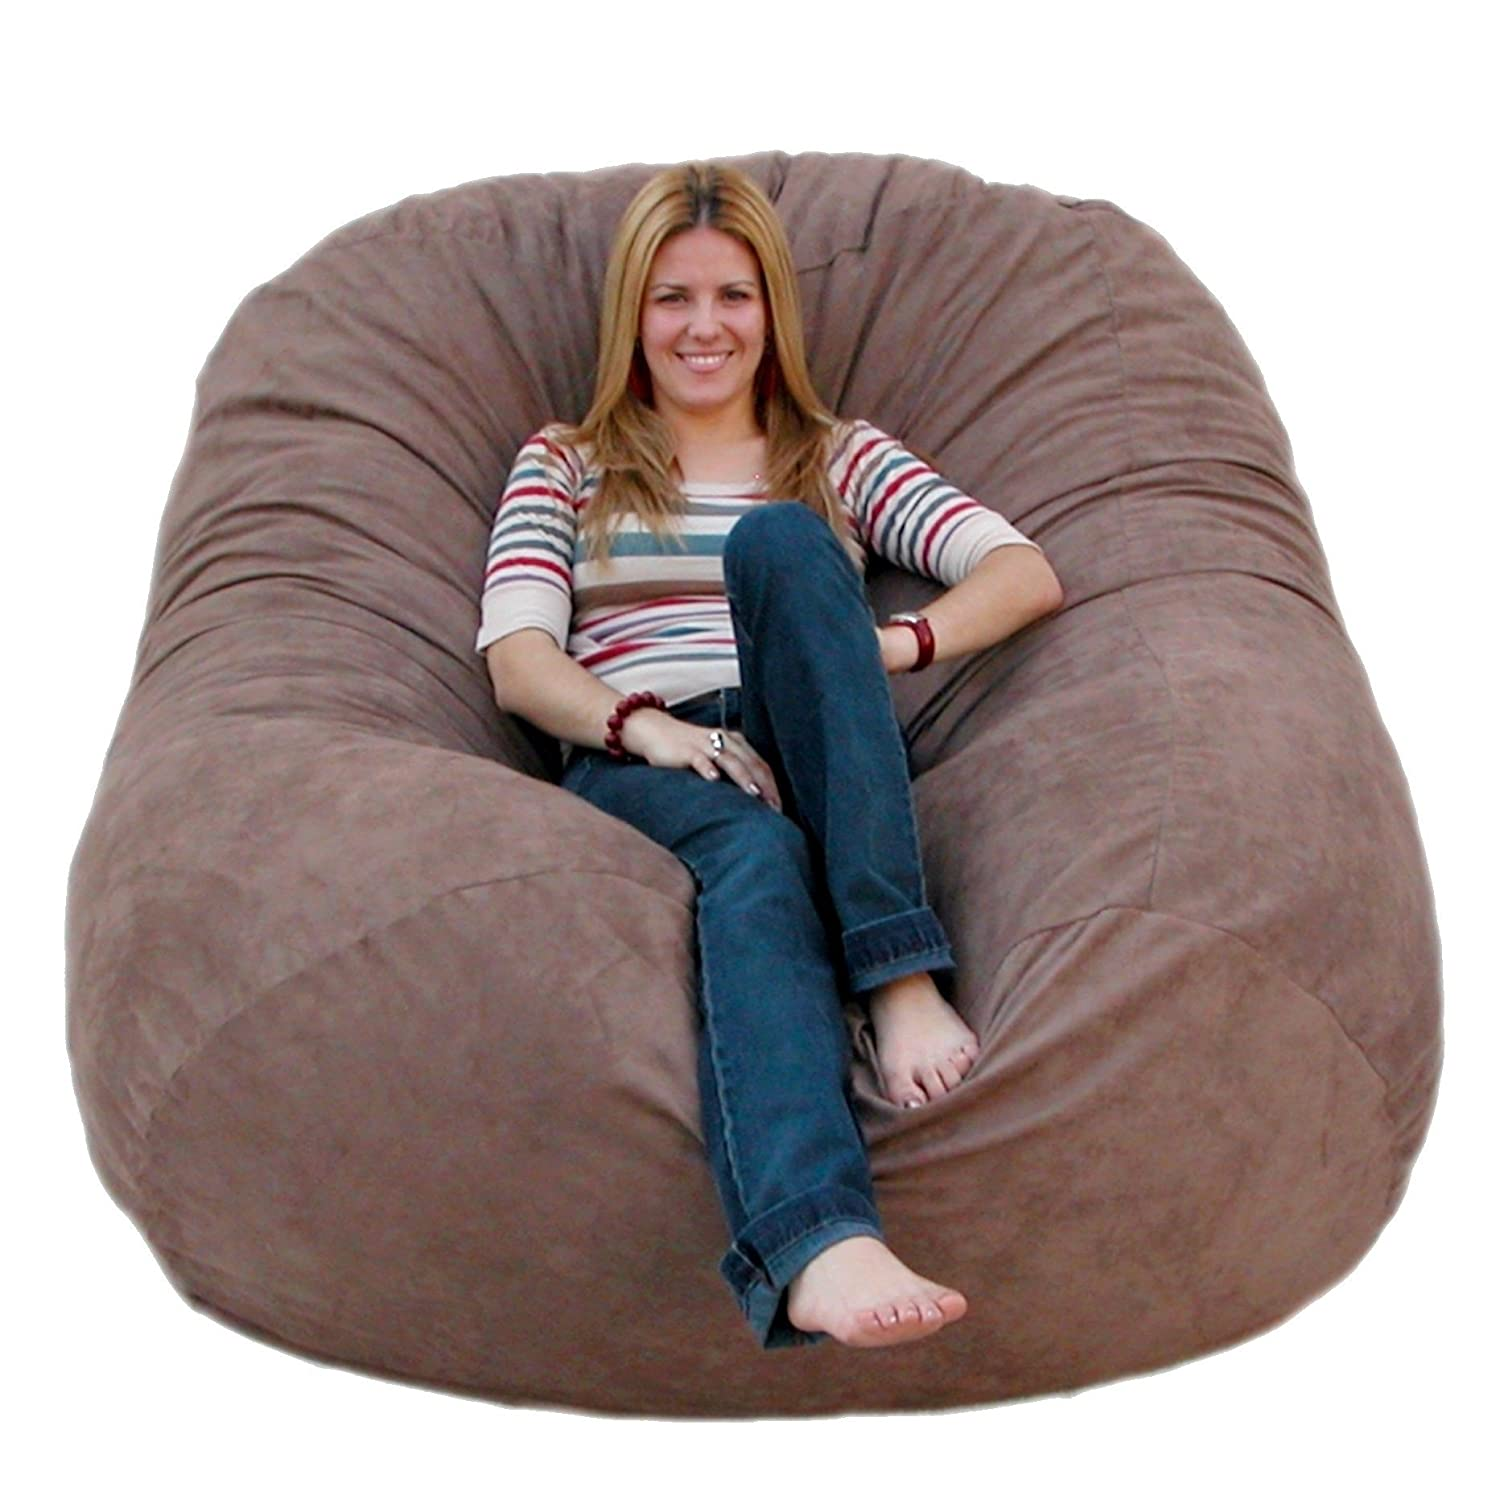 Amazon.com: Cozy Sack 6-Feet Bean Bag Chair, Large, Earth: Kitchen u0026 Dining